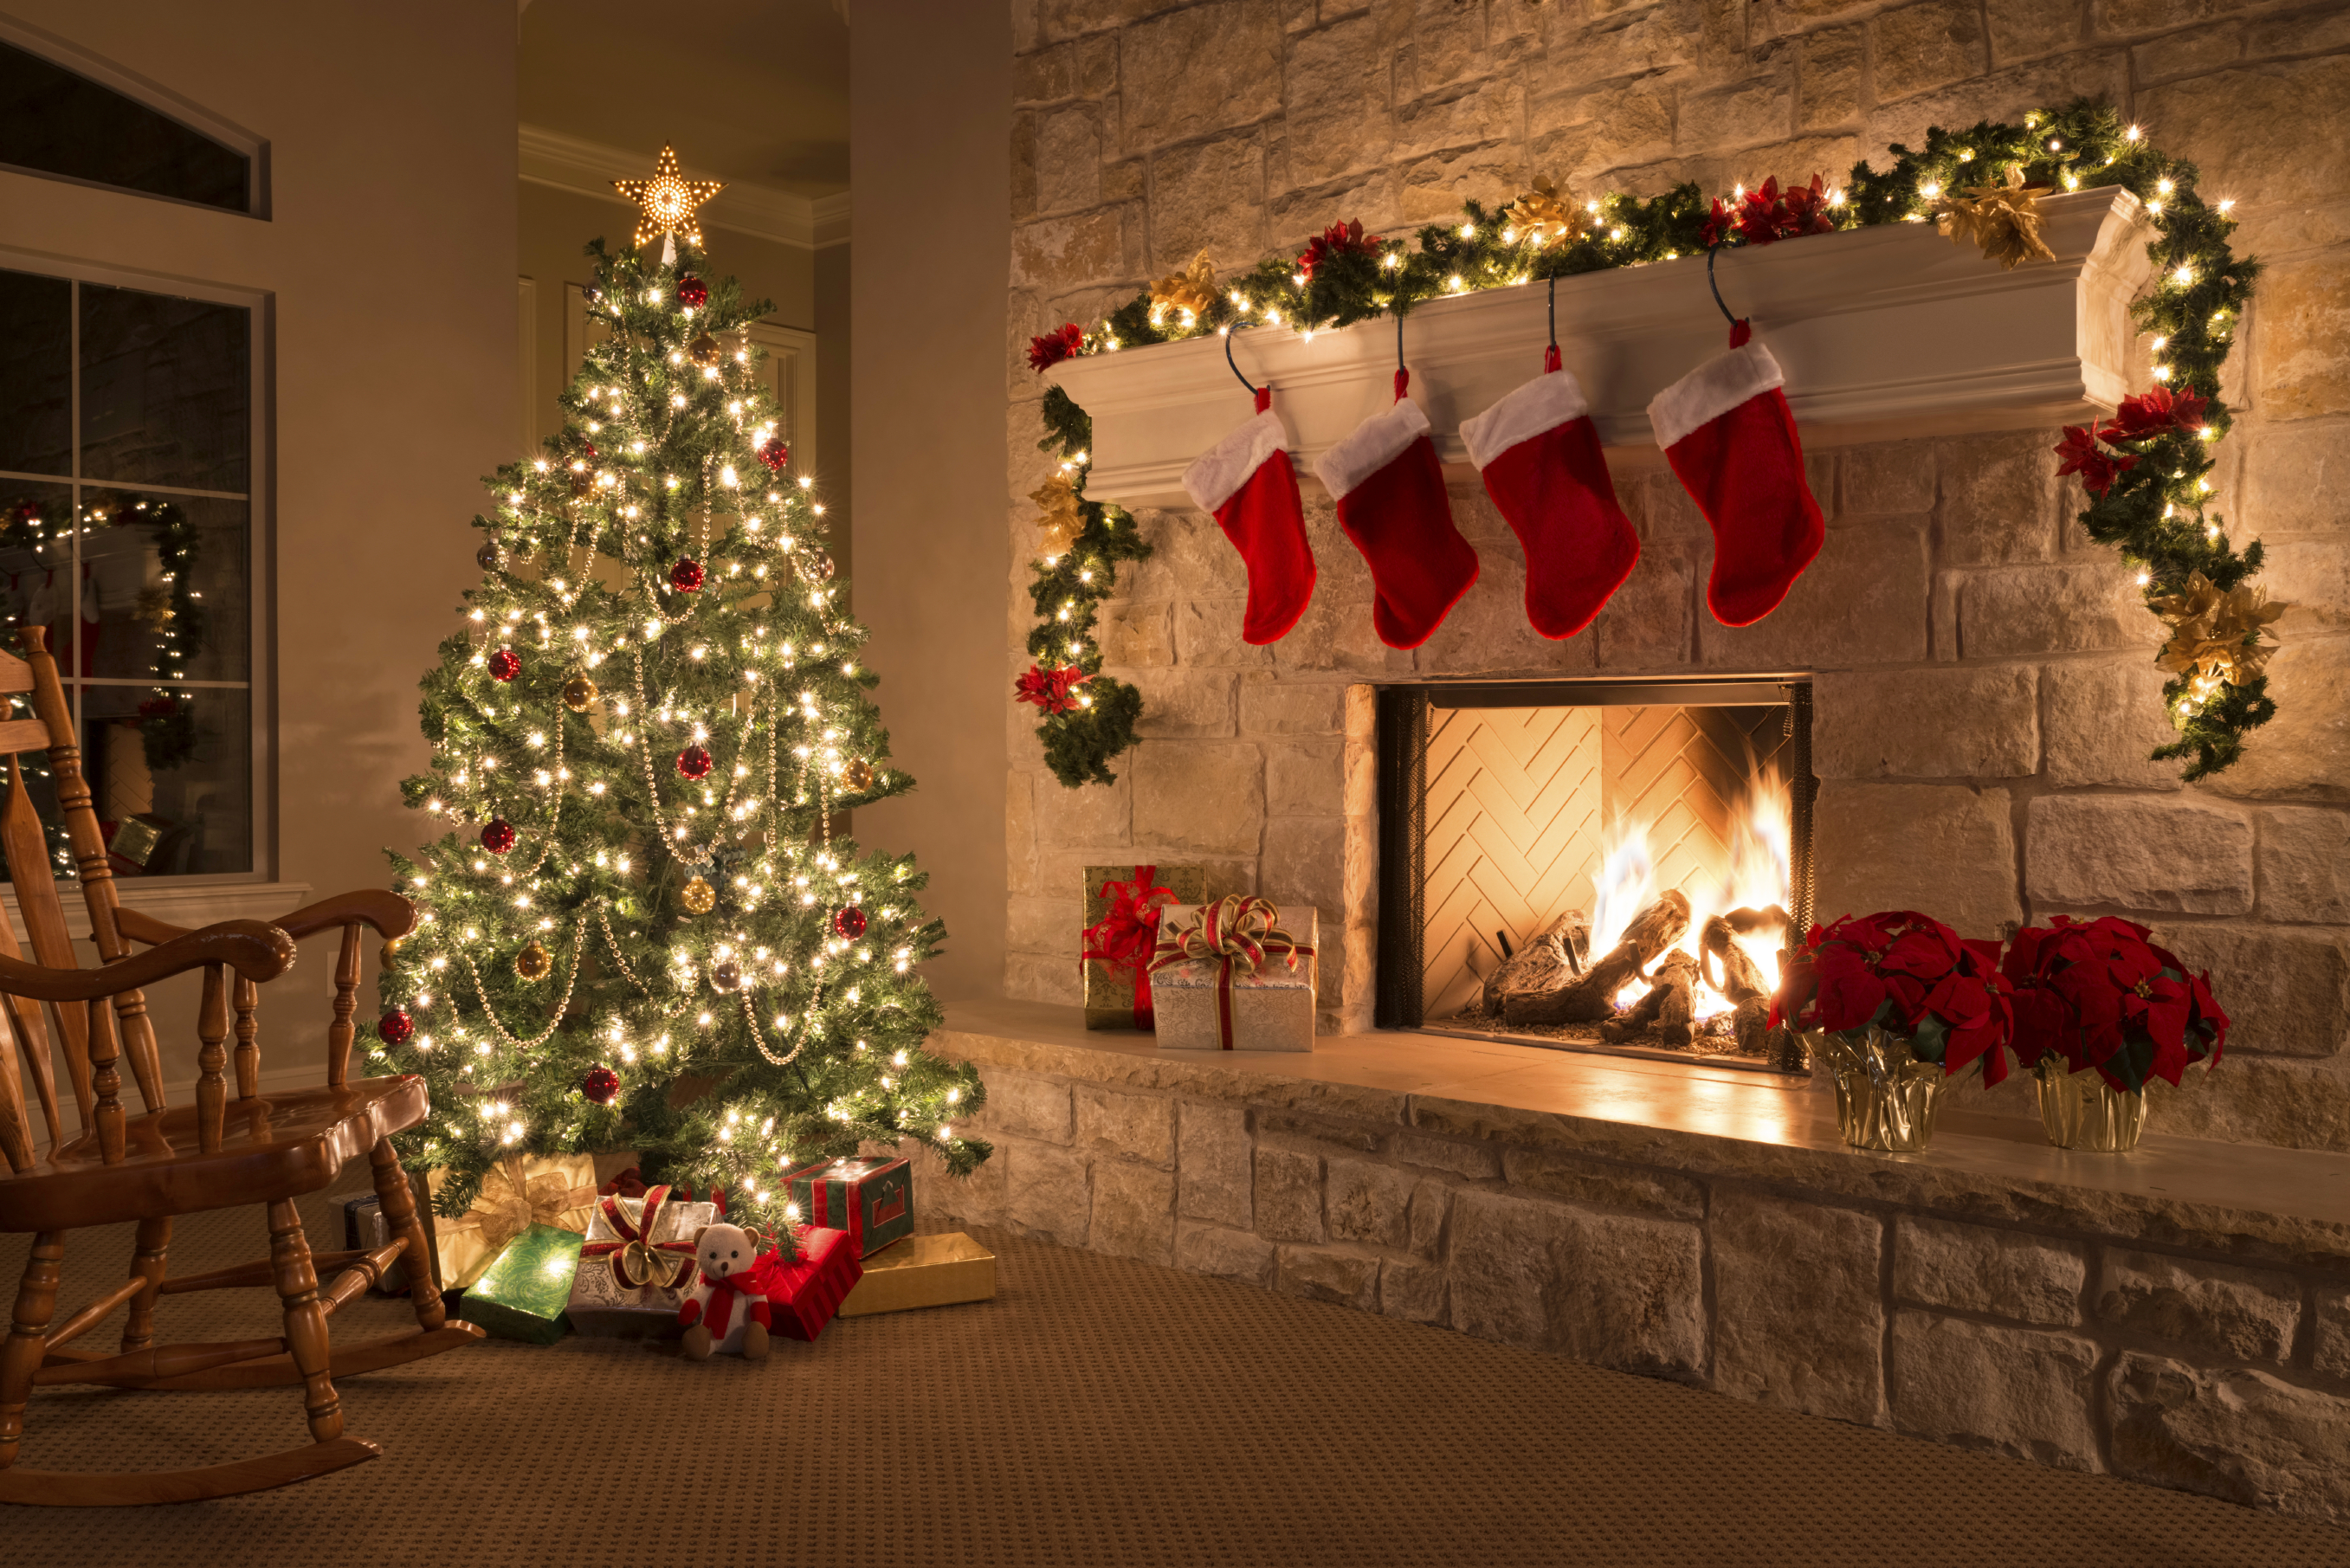 X-mas or Christmas: Name controversy unnecessary